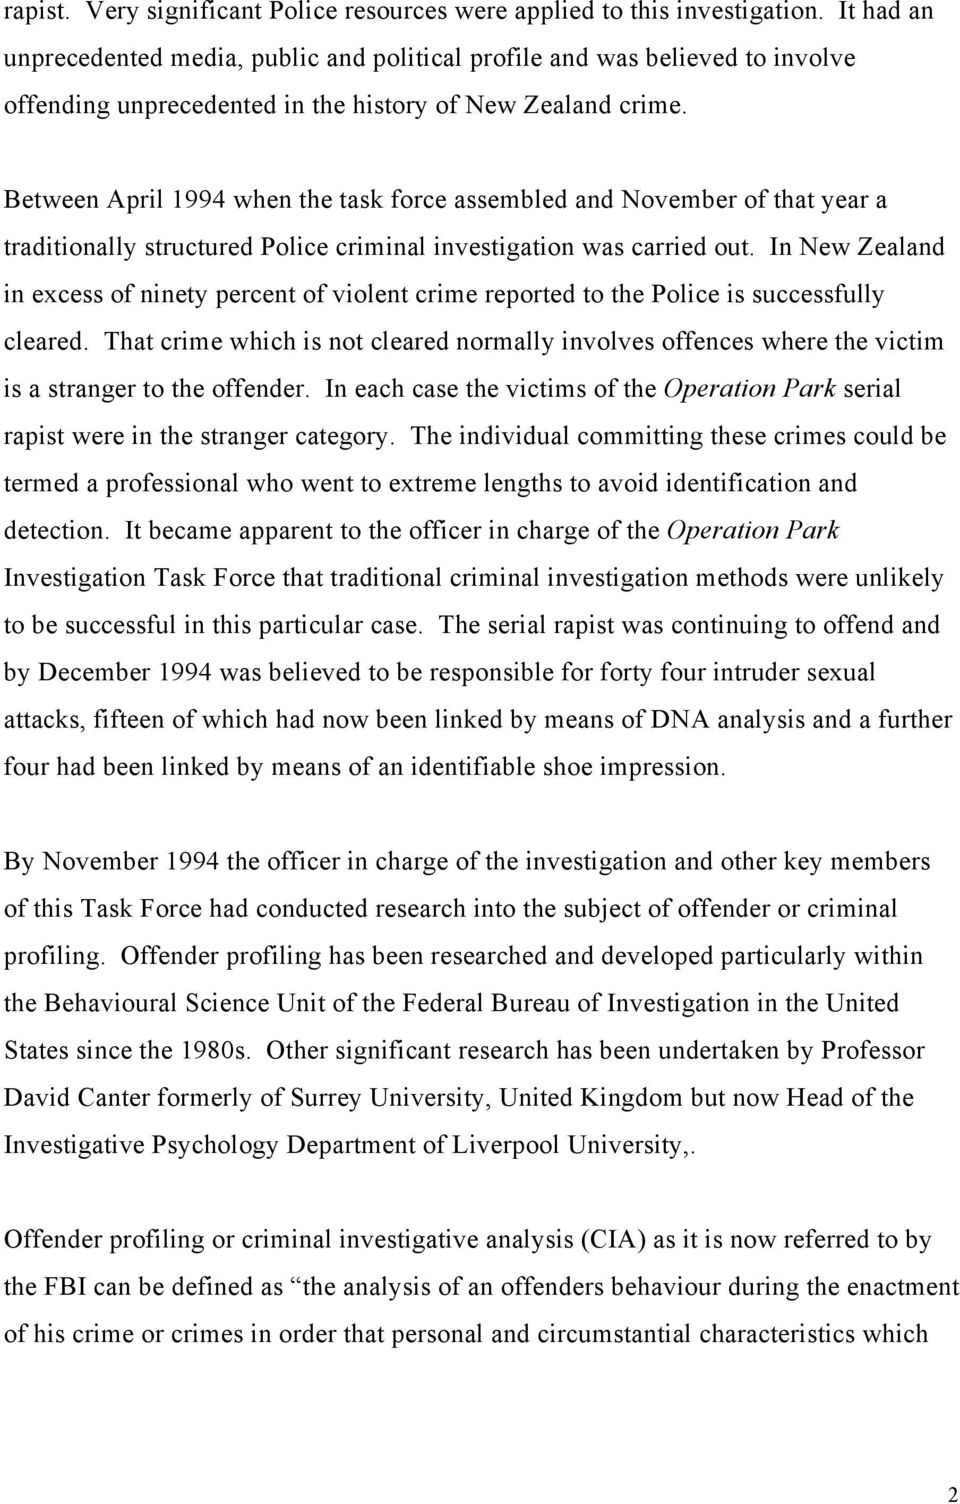 Between April 1994 when the task force assembled and November of that year a traditionally structured Police criminal investigation was carried out.